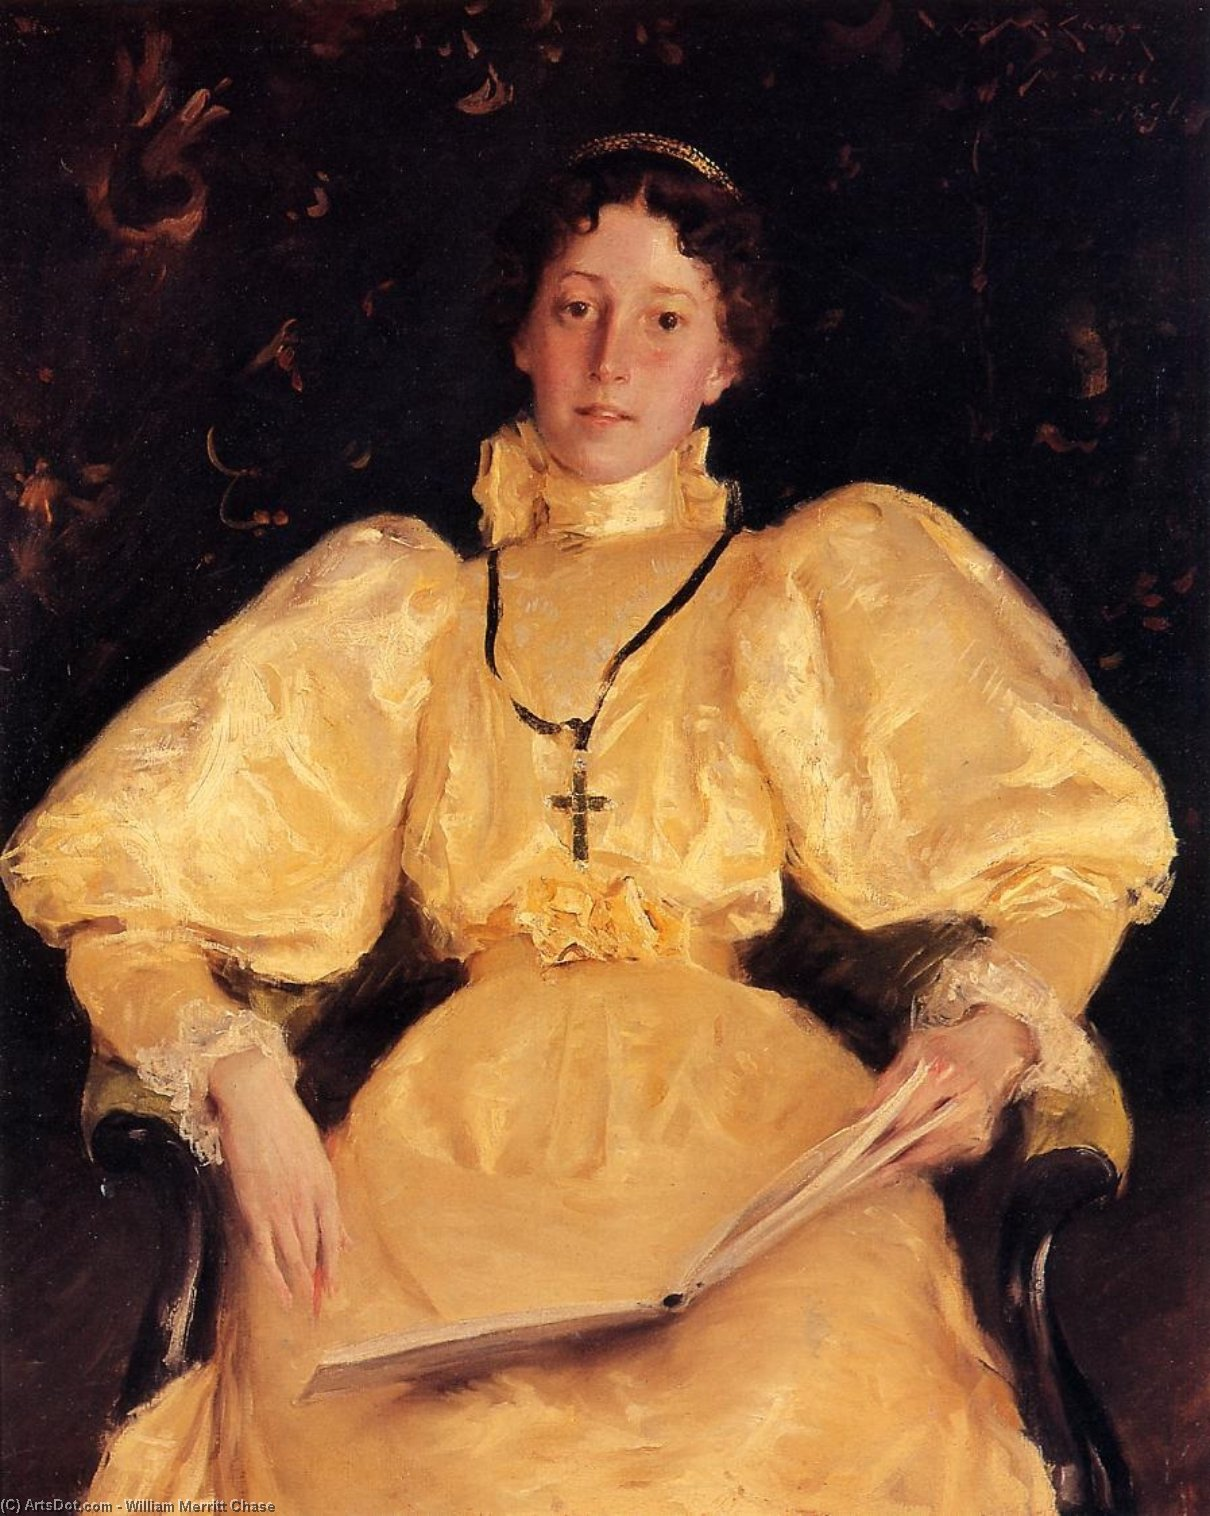 Golden Lady, холст, масло по William Merritt Chase (1849-1916, United States)